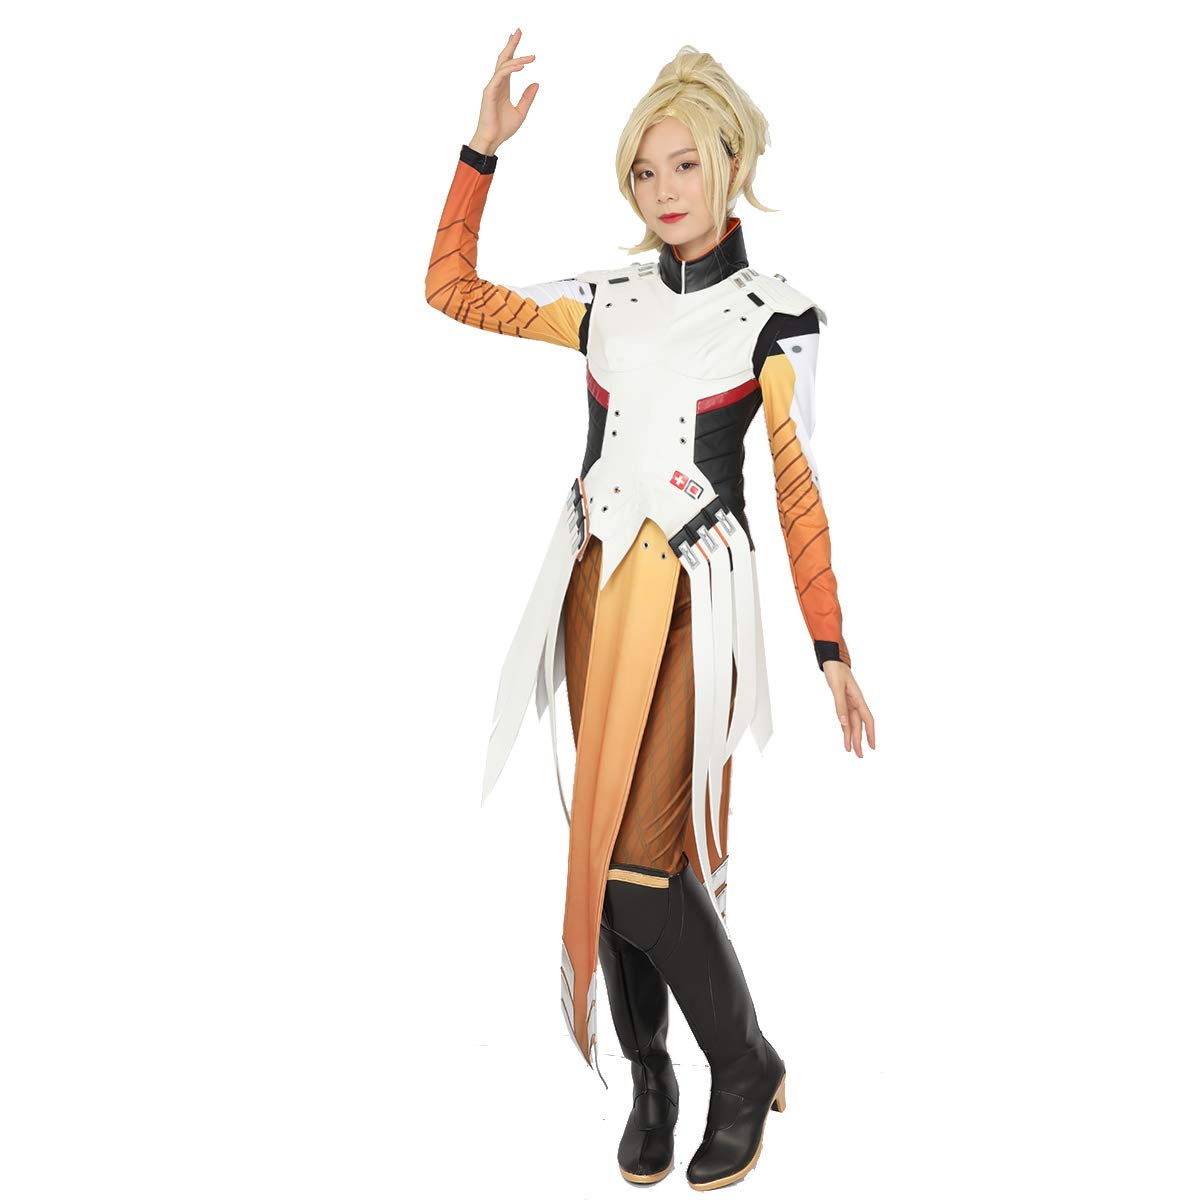 Amazon.com  Women s OW Mercy Cosplay Costume Deluxe Game Anime Battle Suit  Outfits for Women Girls  Clothing 0352682b4